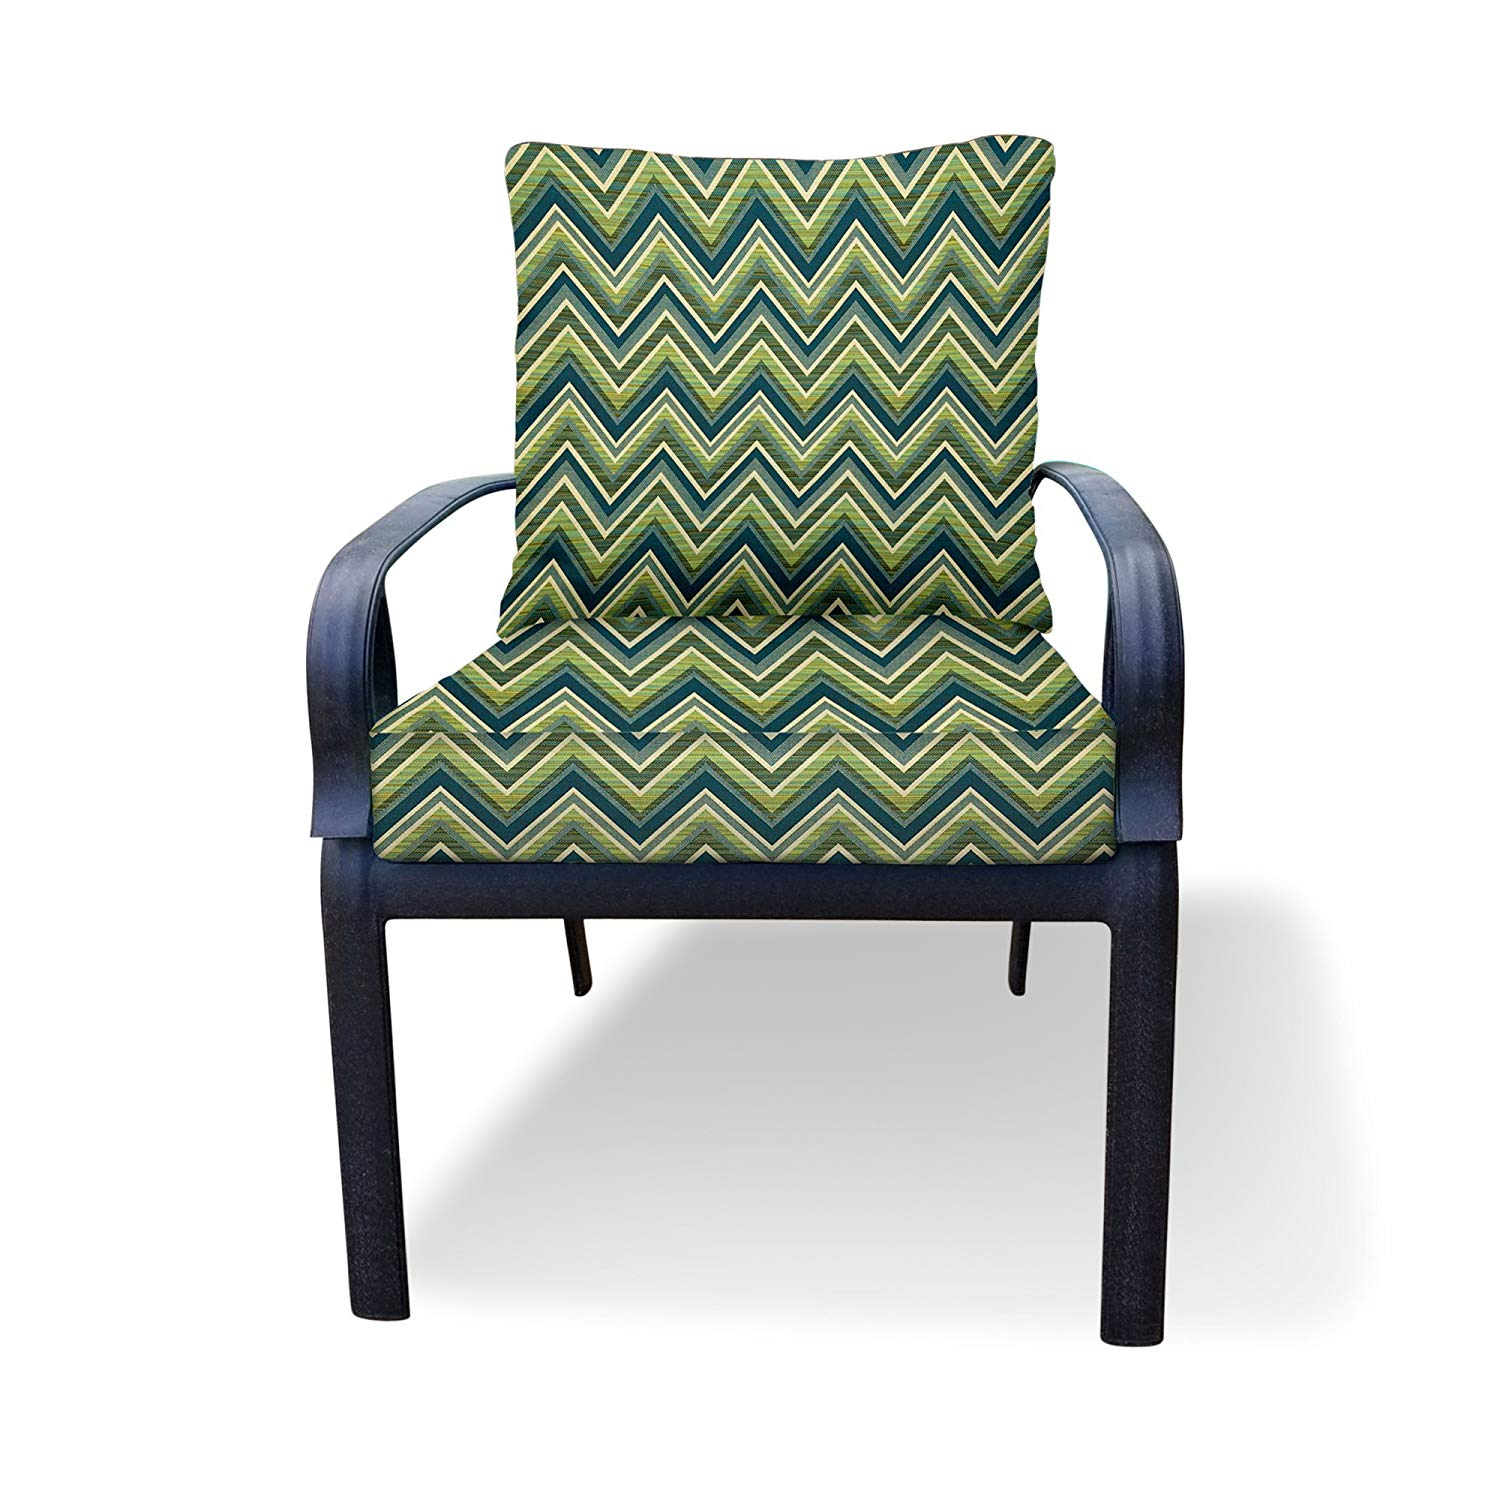 Thomas Collection Outdoor Cushion, Blue Green Outdoor Cushions for Chair, Chaise or Seat Only, Sunbrella Outdoor Dining Chair Cushions, Made in USA, 13156 - Furniture Not Included